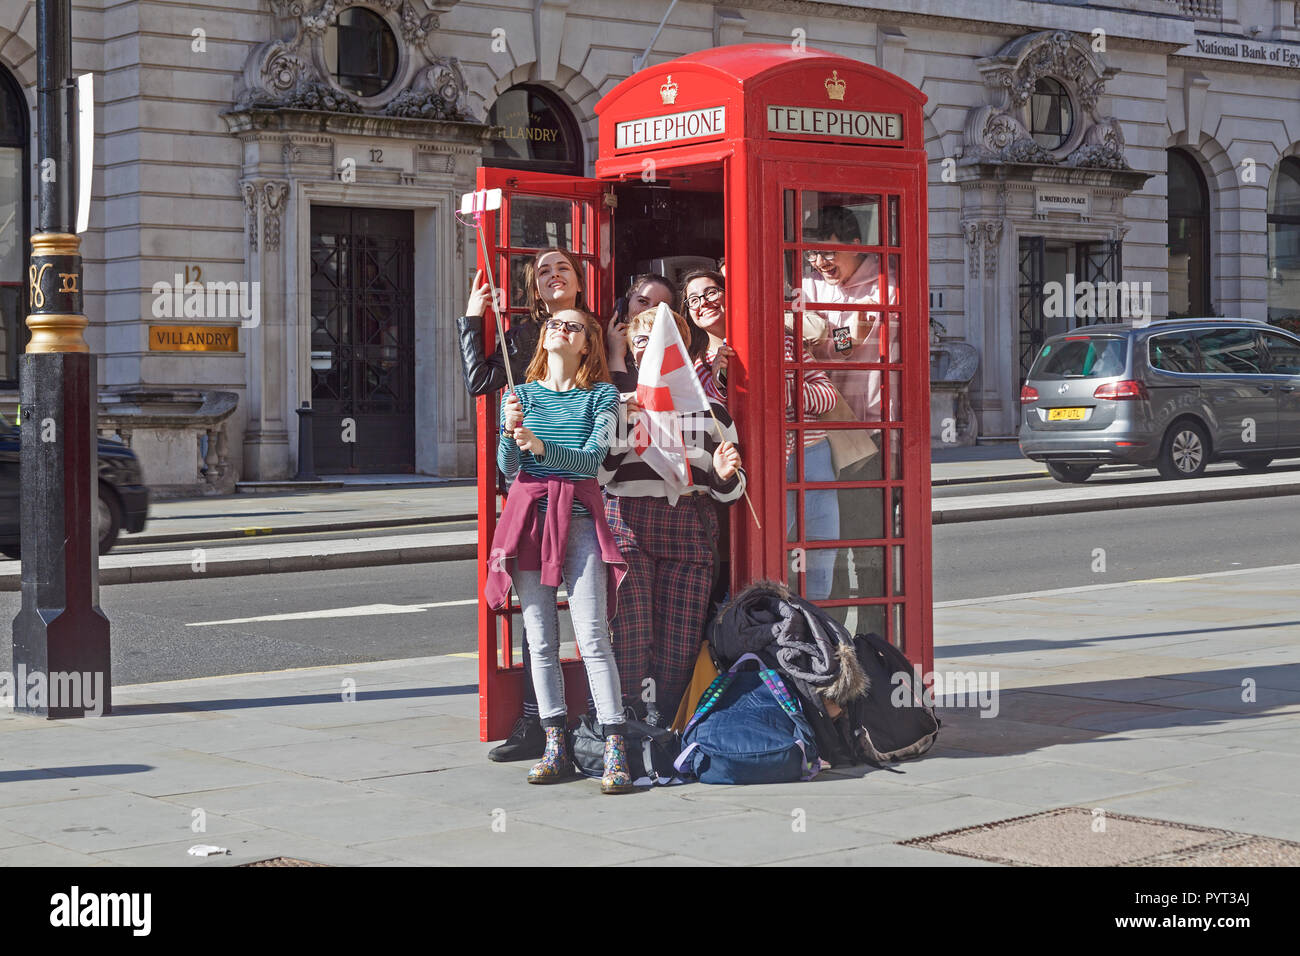 A party of young female tourists taking a selfie after testing the capacity of a traditional red telephone box in London's Waterloo Place. - Stock Image